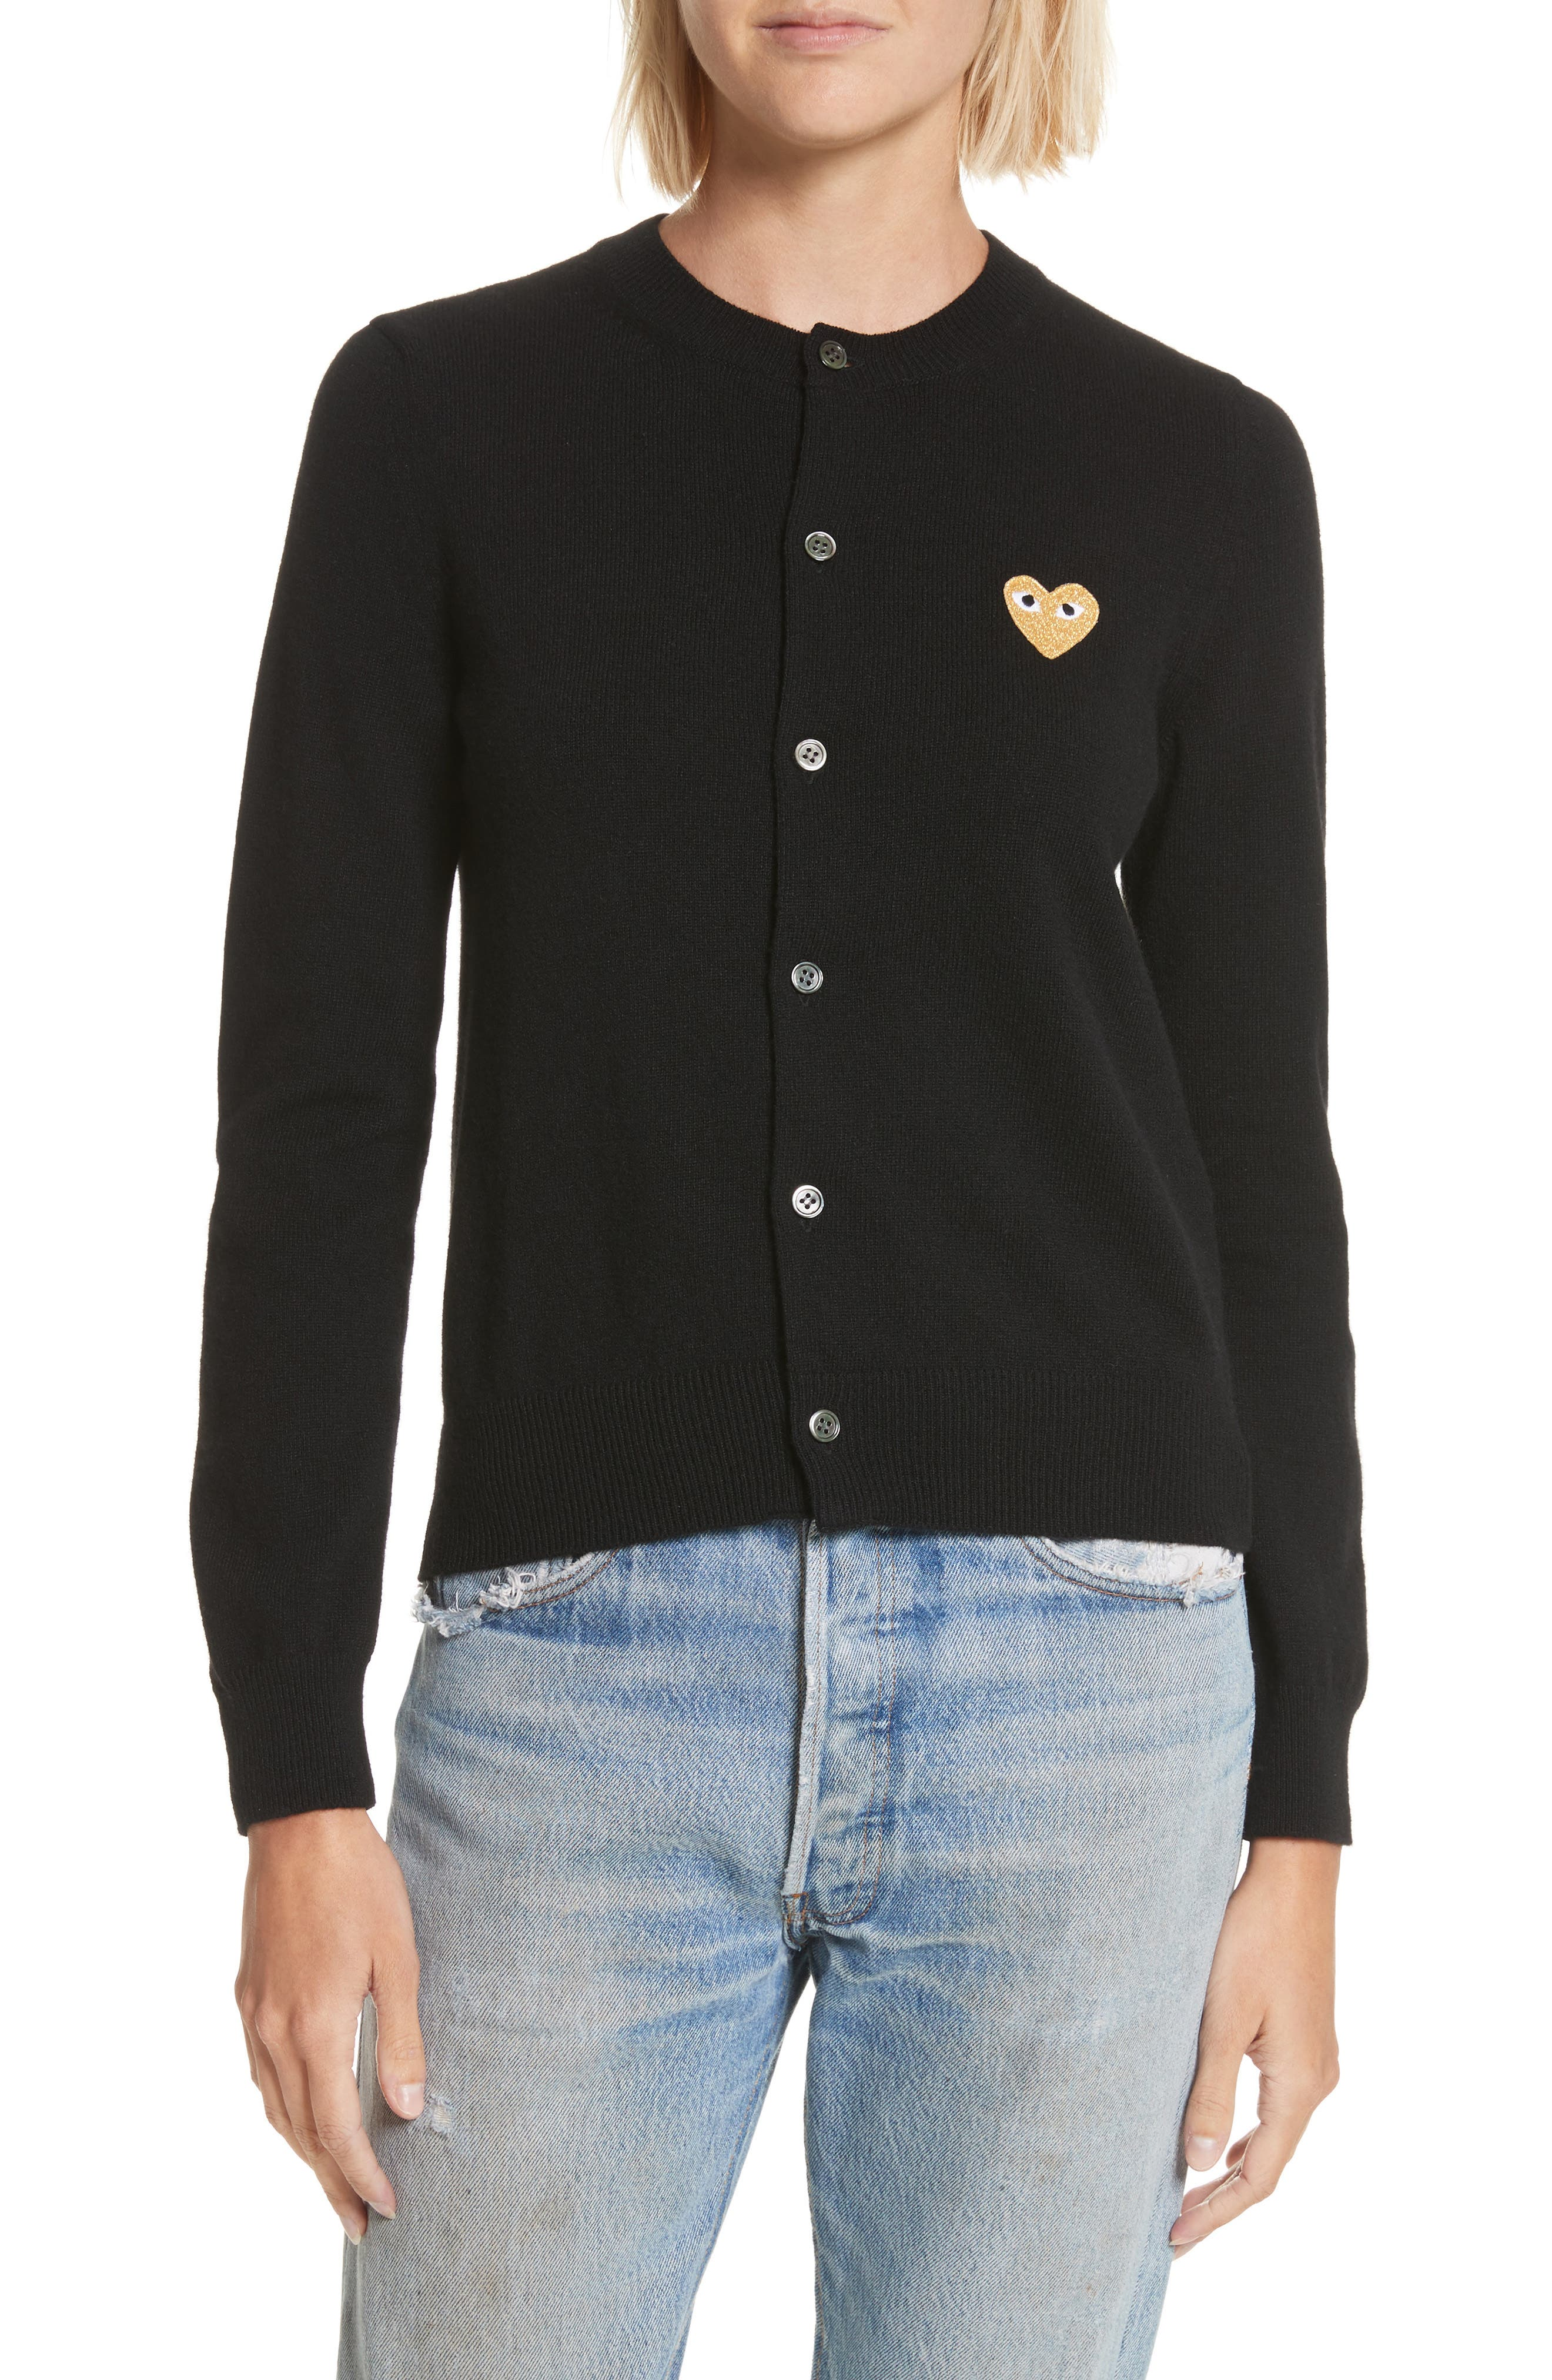 Alternate Image 1 Selected - Comme des Garçons PLAY Gold Heart Patch Wool Cardigan